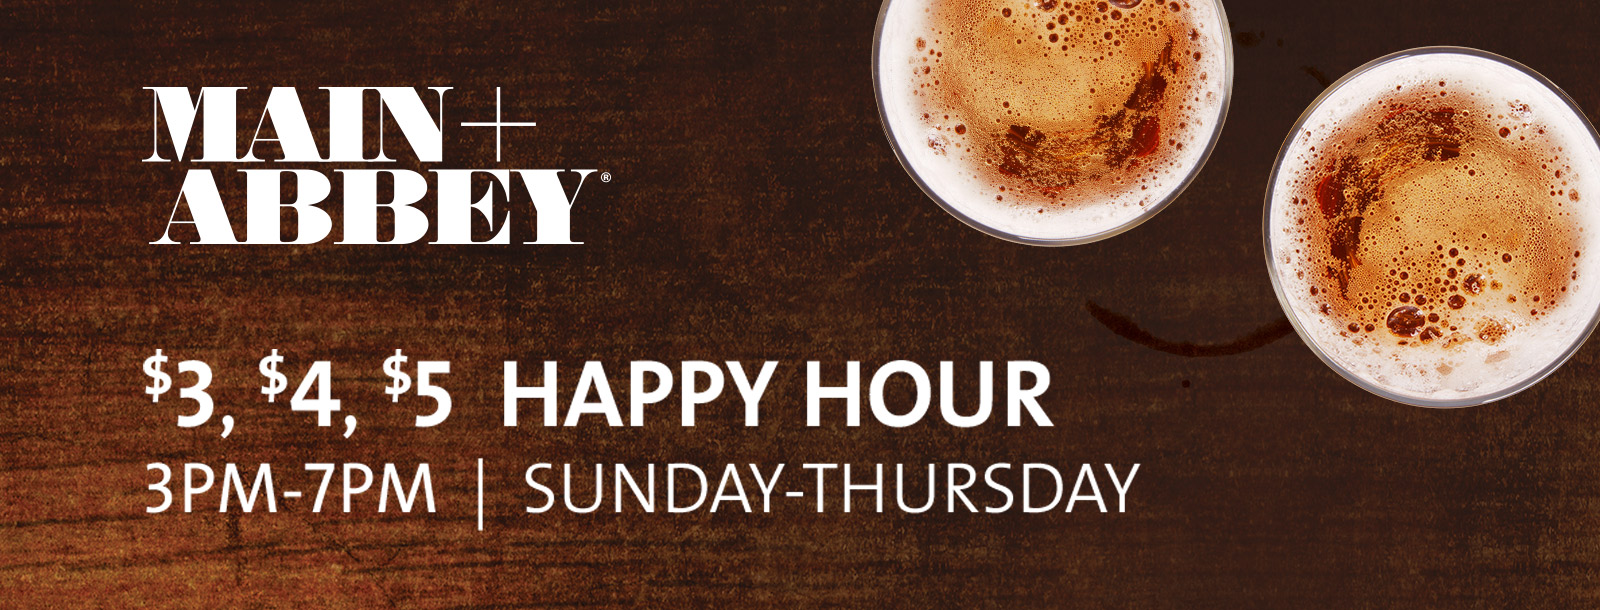 sioux city happy hour main abbey